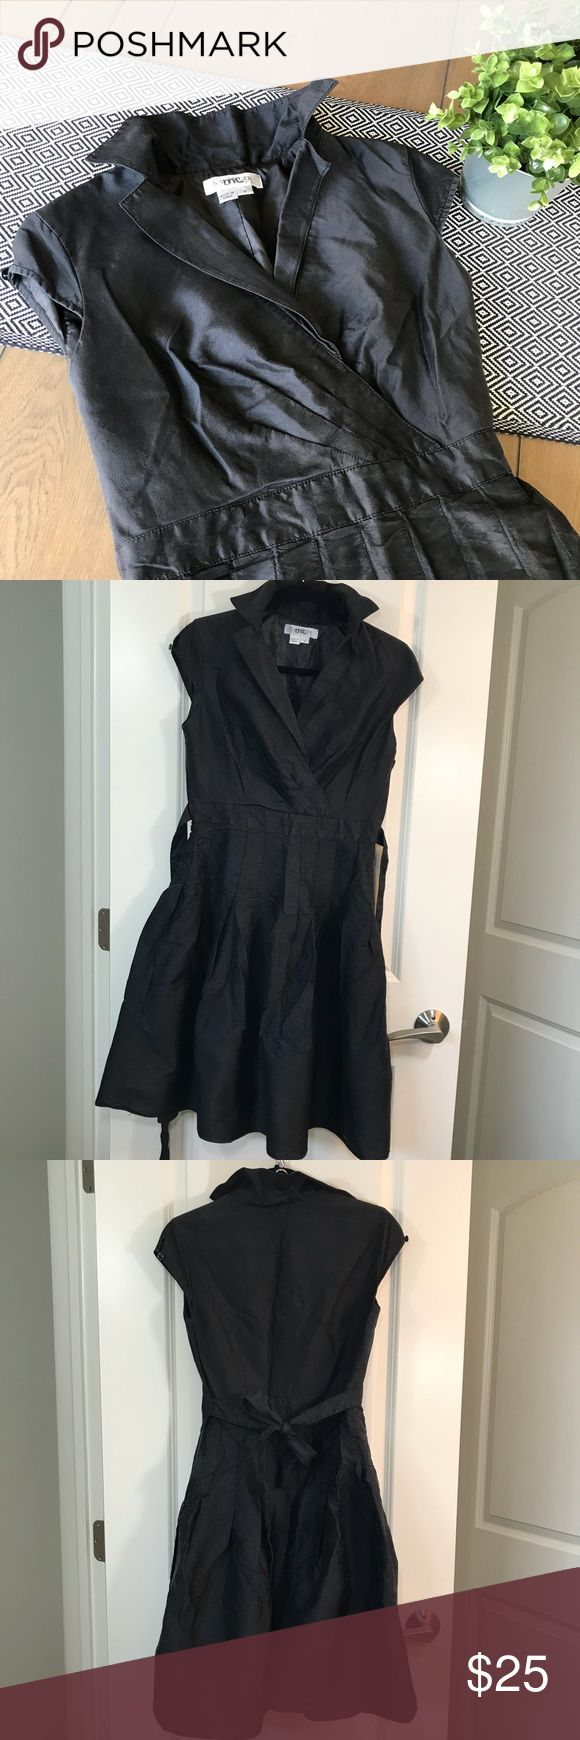 Kay Unger Black Dress Cute black party dress. Zipper on side. Some damage to buttons on cap sleeves. Ties in back. Kay Unger Dresses